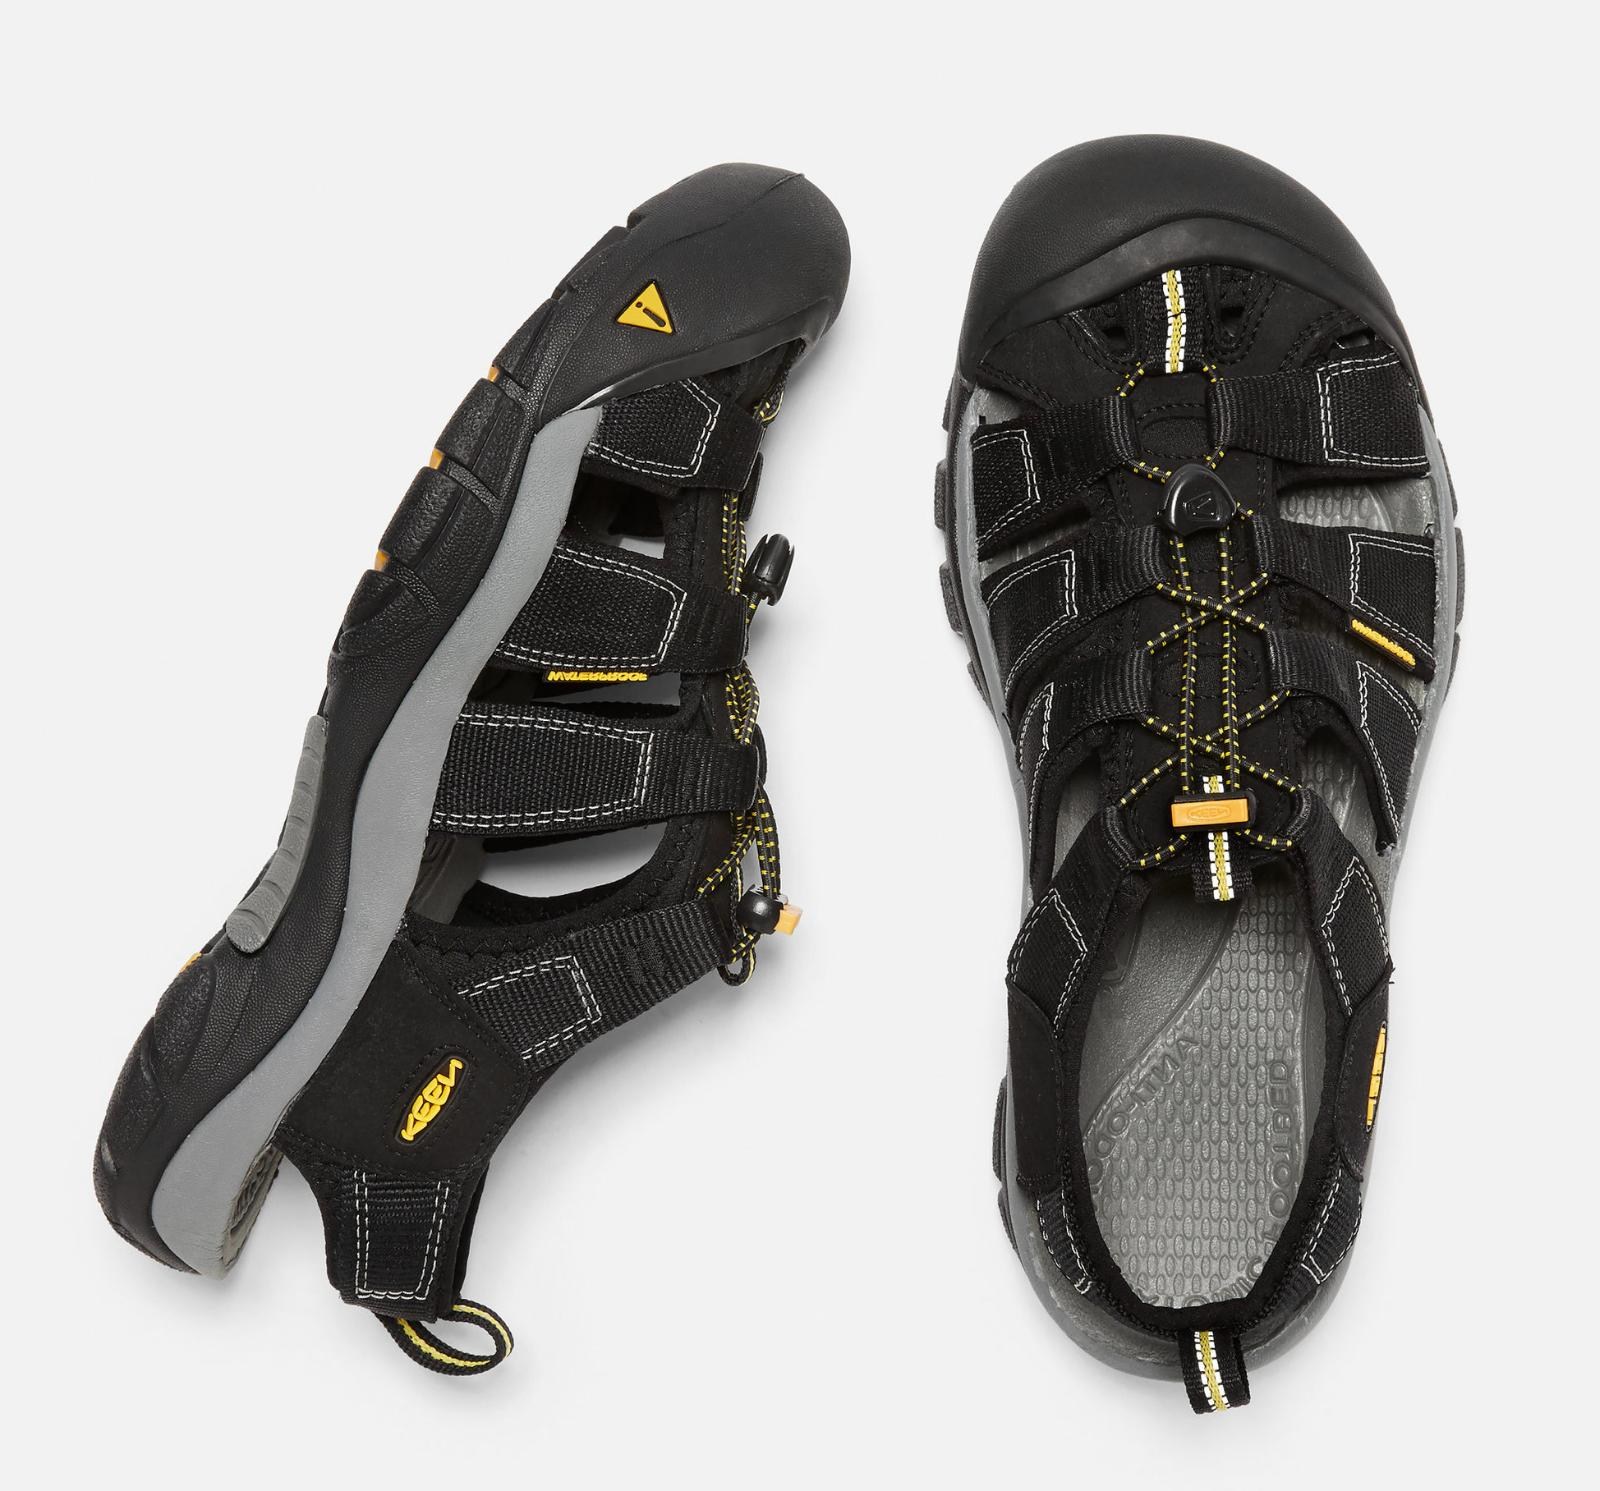 c9431e2792cd KEEN Newport H2 Sandals Black - Men s Size 7-14